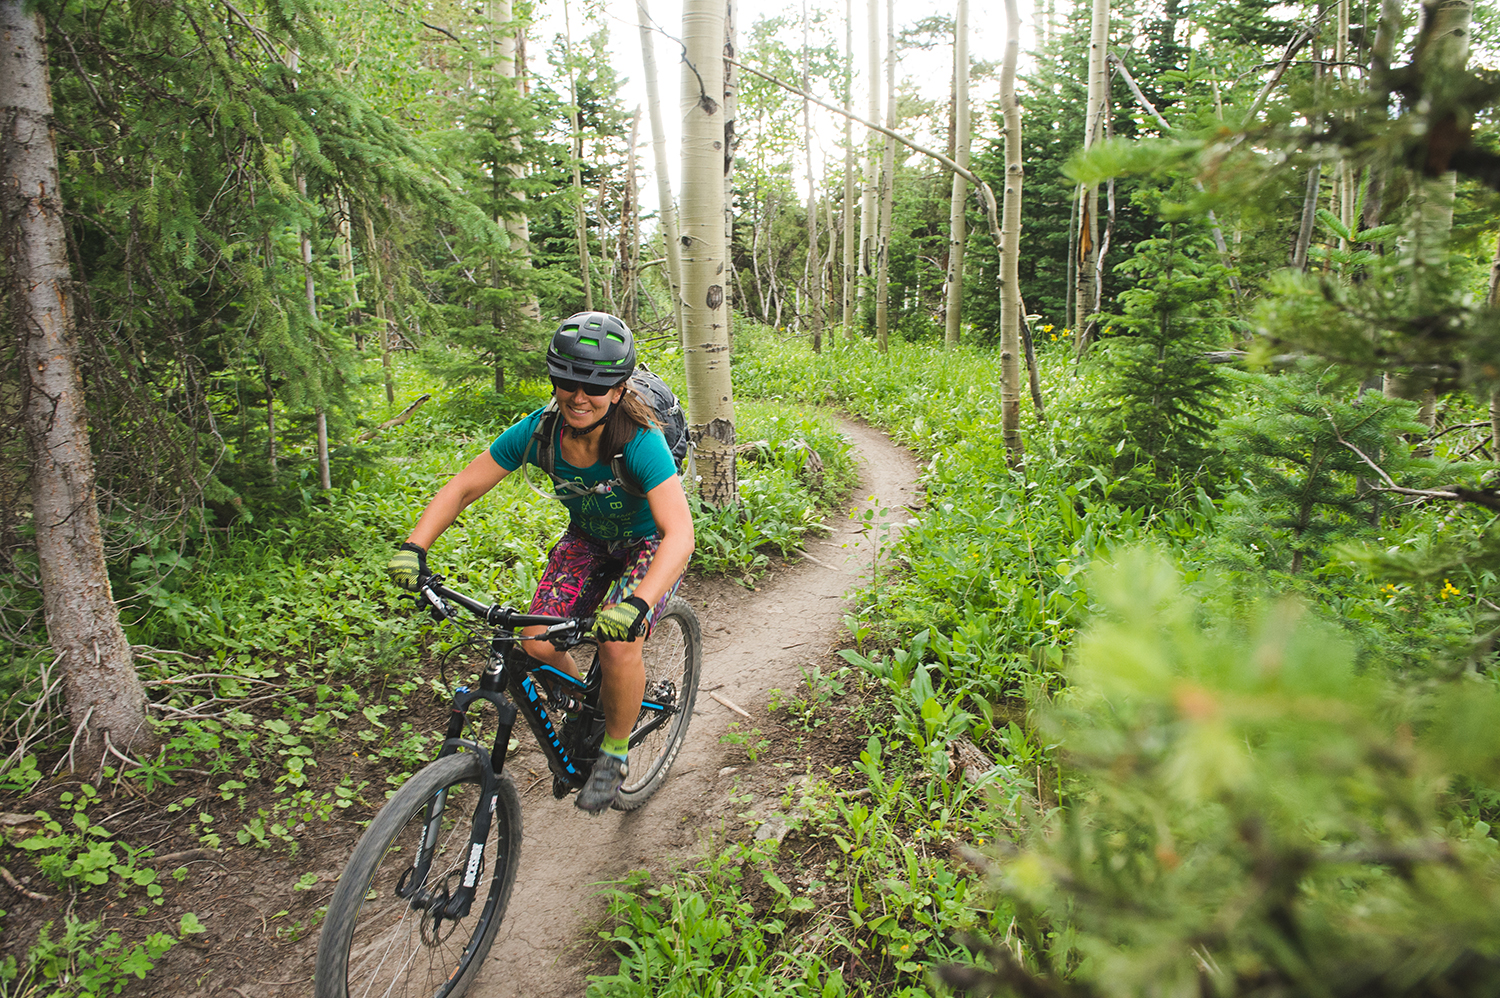 WinterPark_COC_July2016_1204_squarespace.jpg